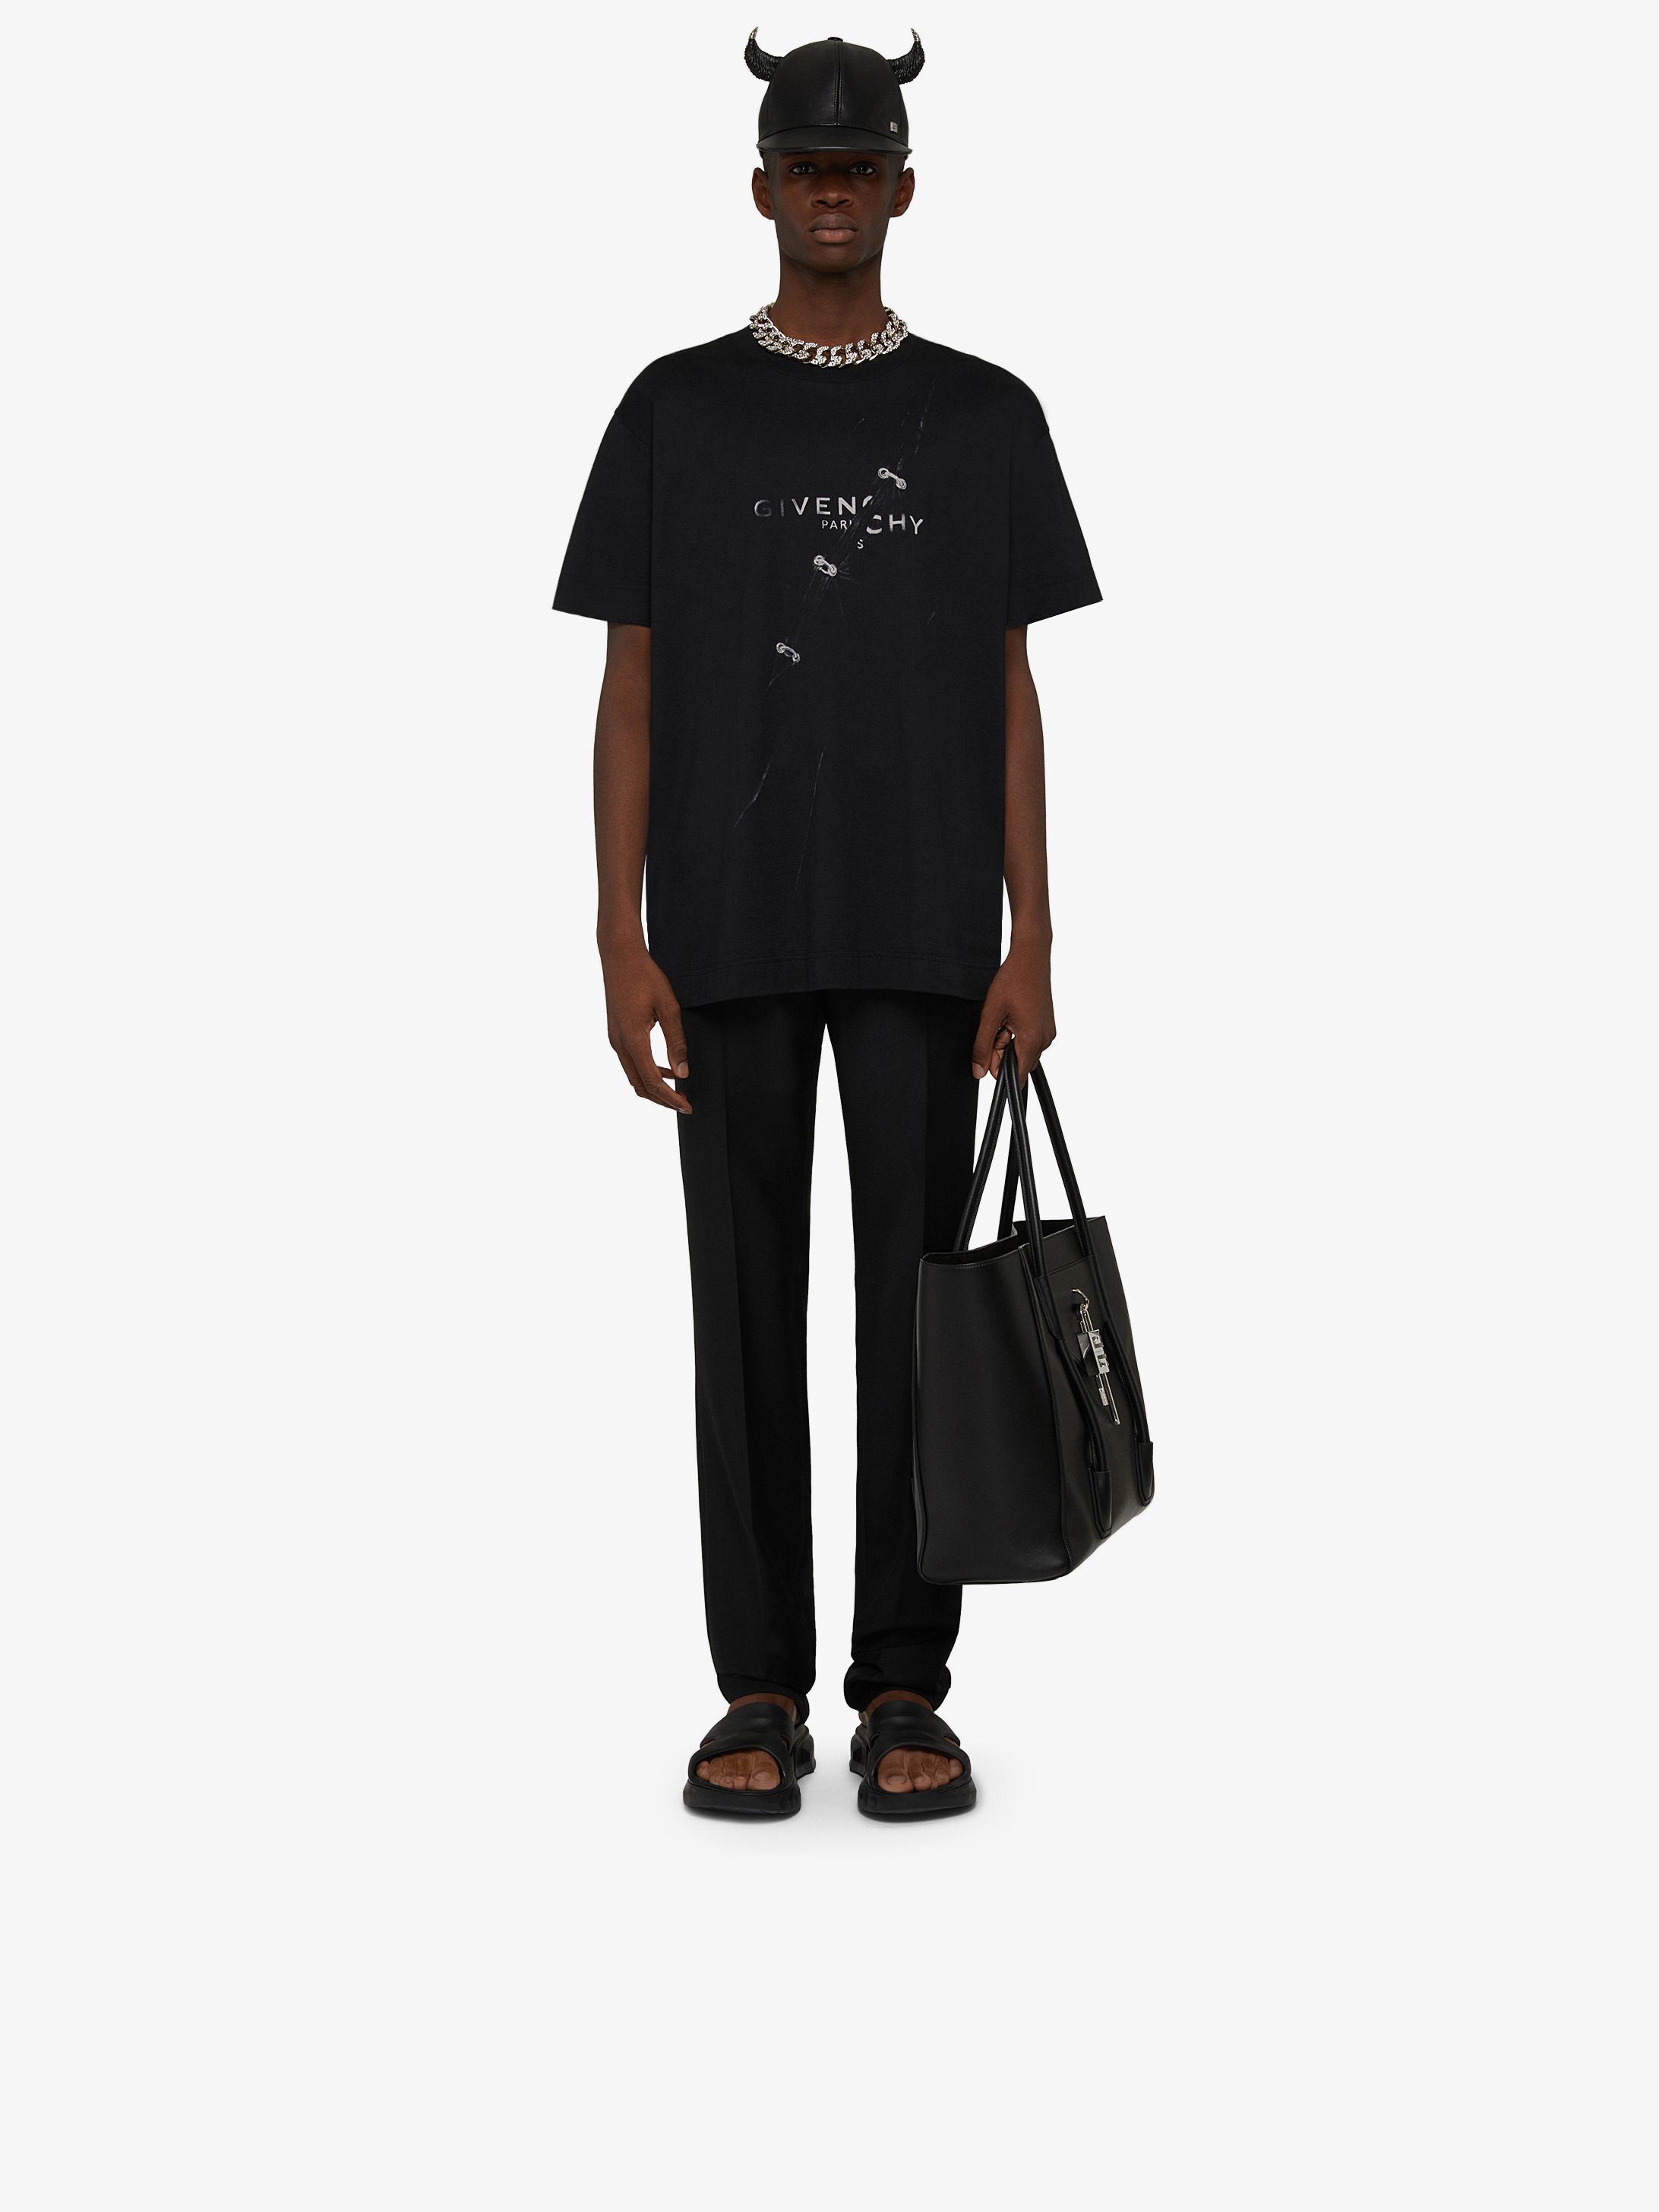 GIVENCHY oversized T-shirt with trompe-l'oeil effect